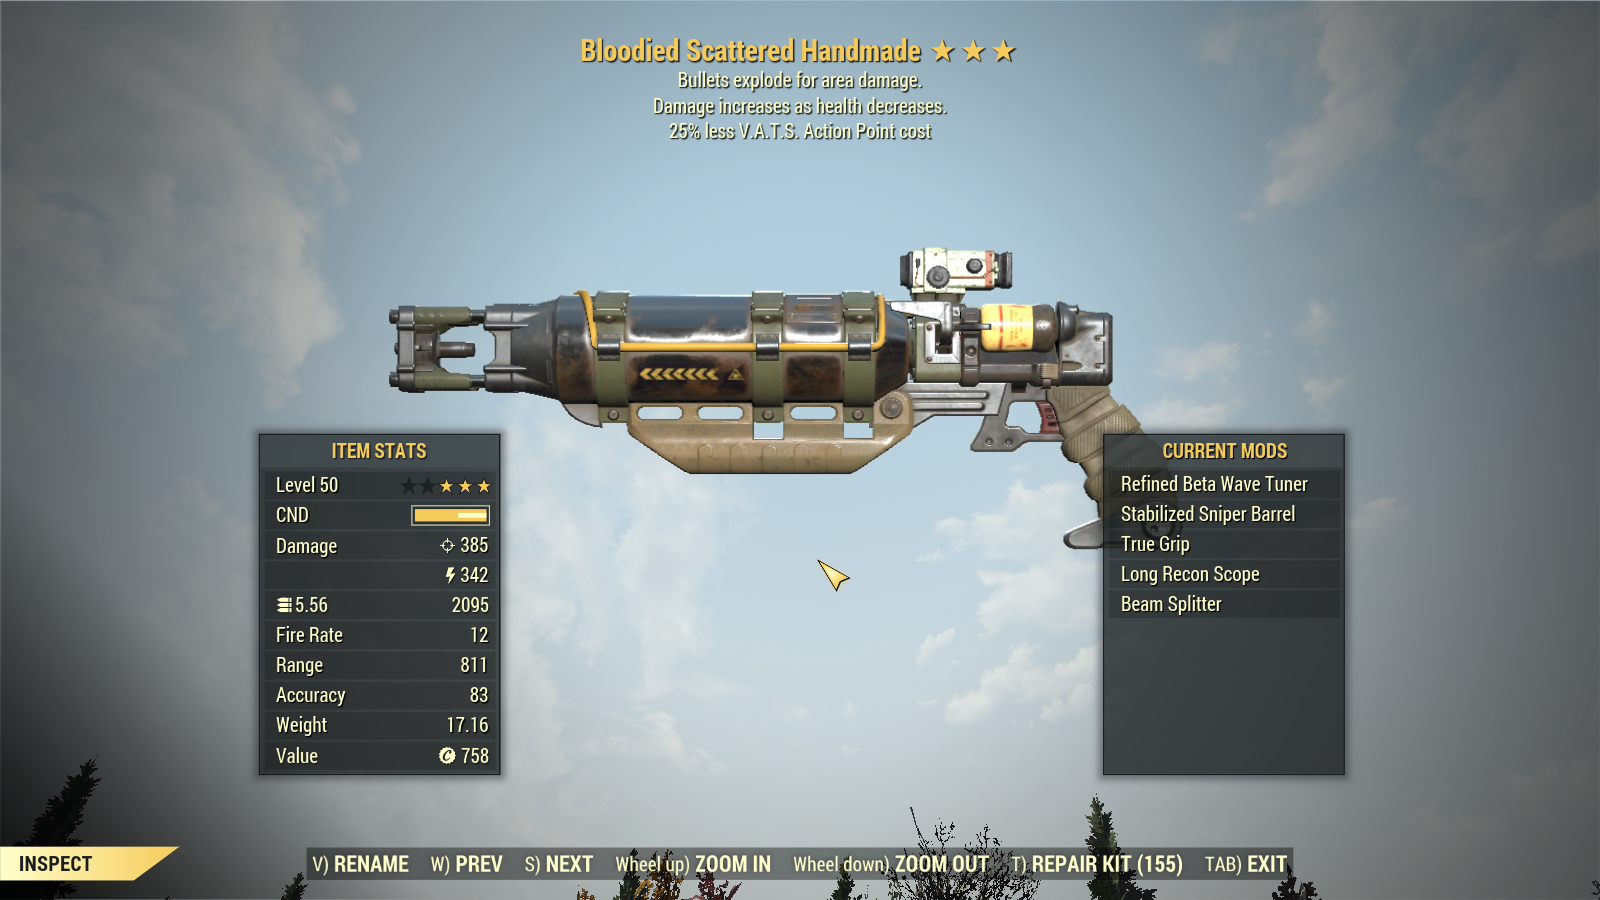 [Rare Glitched] Bloodied Explosive Handmade 25% Less VATS [1000+ DAMAGE]